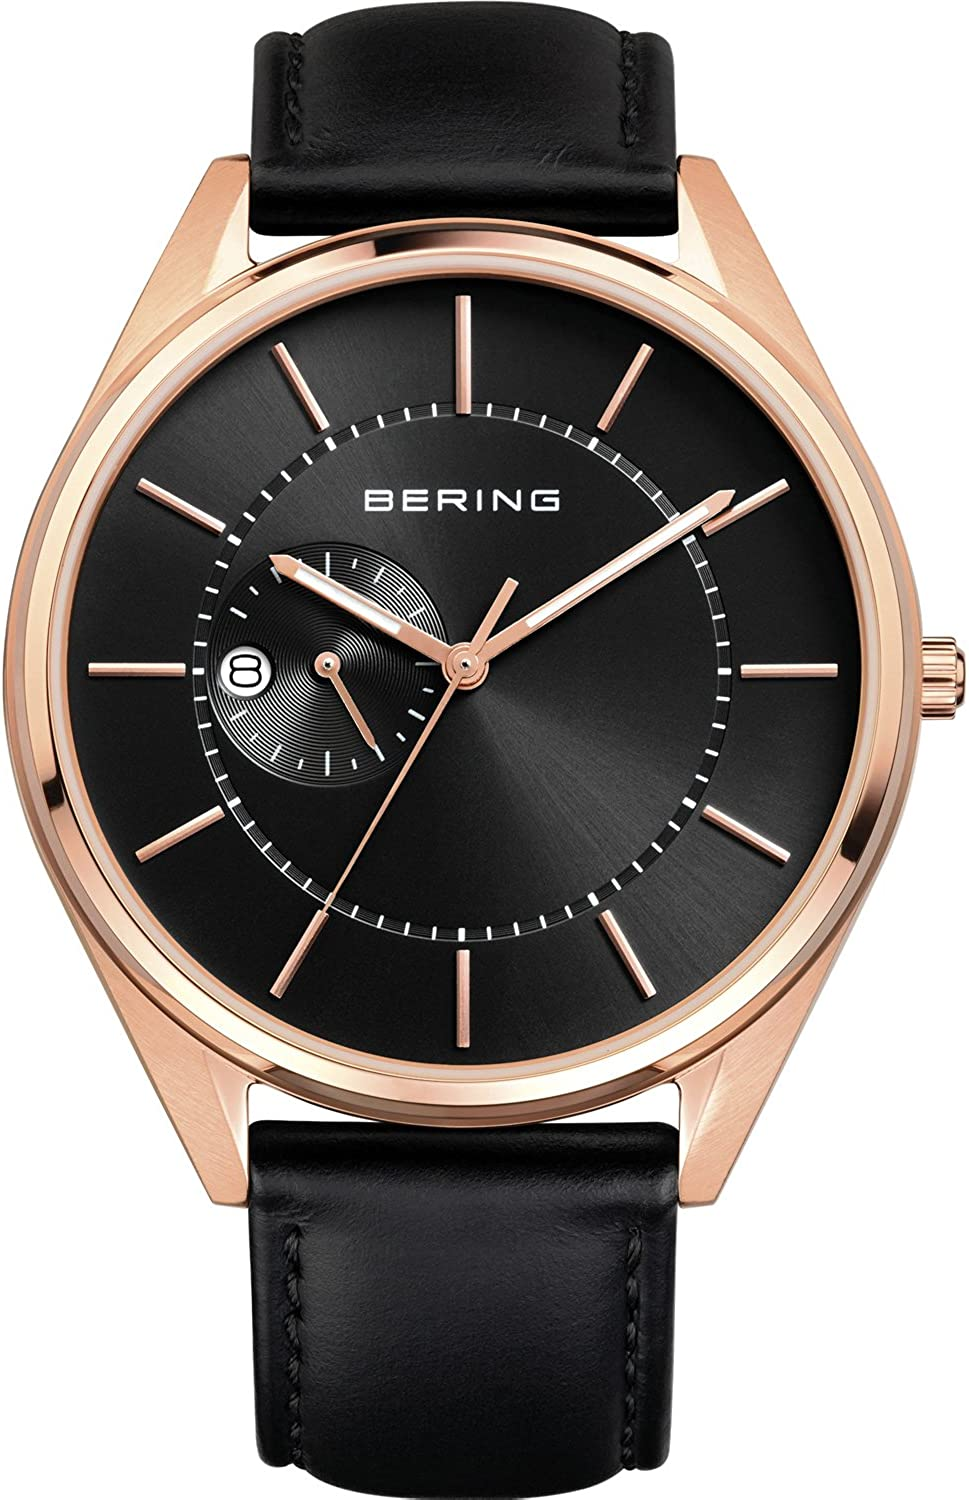 Bering Men s Analogue Automatic Watch with Leather Strap 16243-564